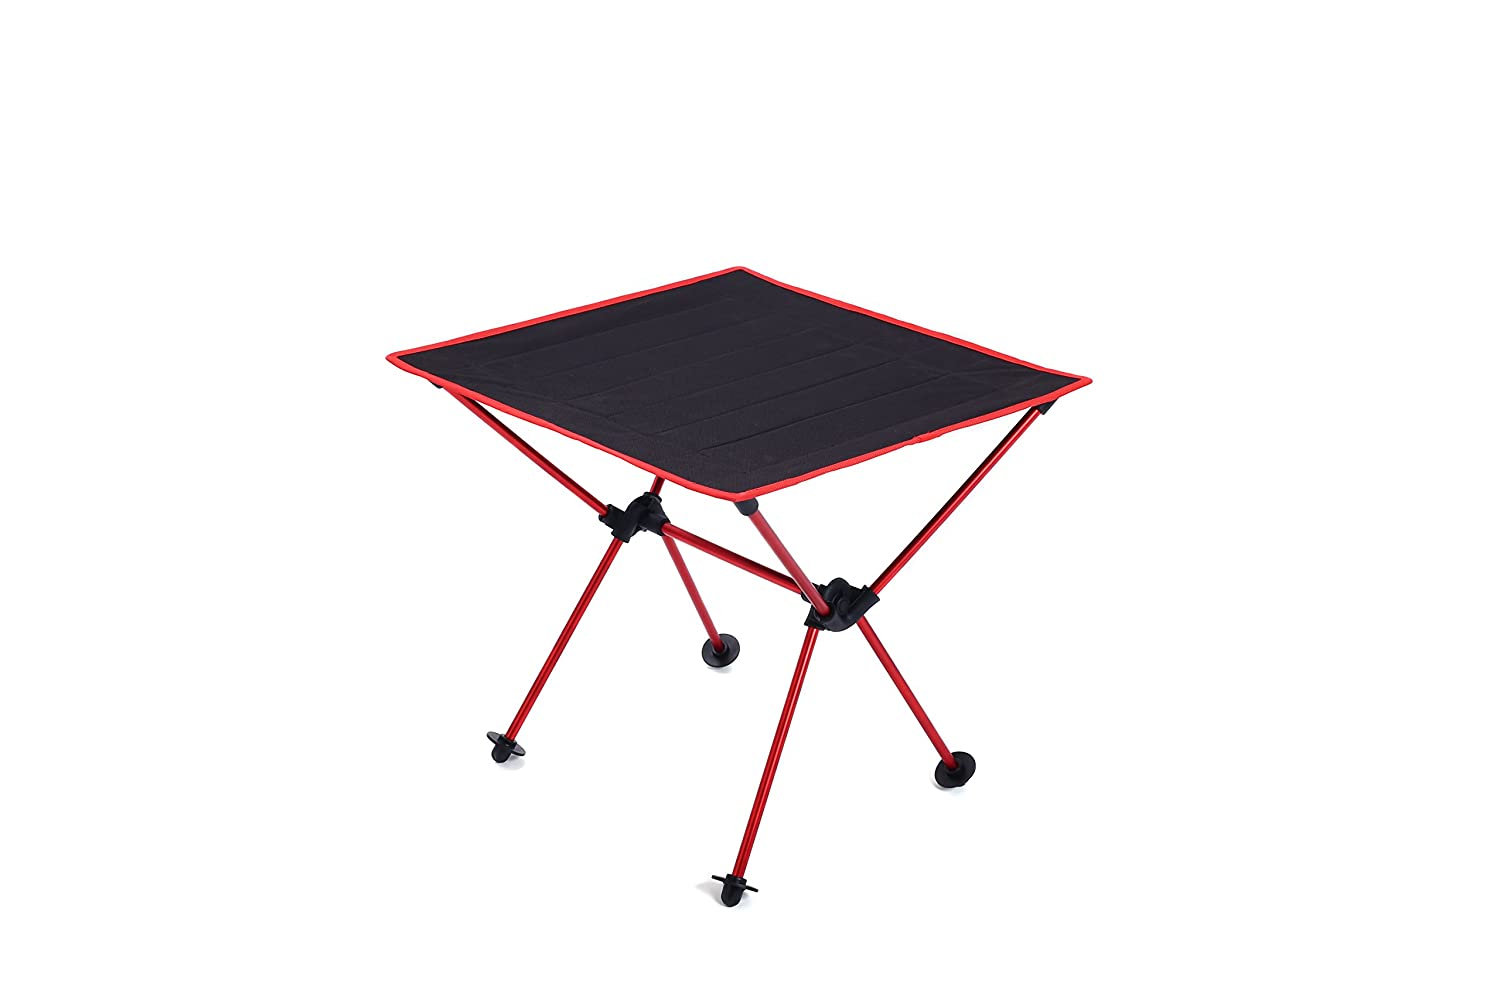 Blue Saibyss Lightweight Portable Table Foldable Folding Camping Outdoor Picnic Travel Ultra Light Desk,Durable 600D Thicken Oxford Cloth,Sturdy Aluminum Alloy Frame,with Carry Bag with Carry Bag